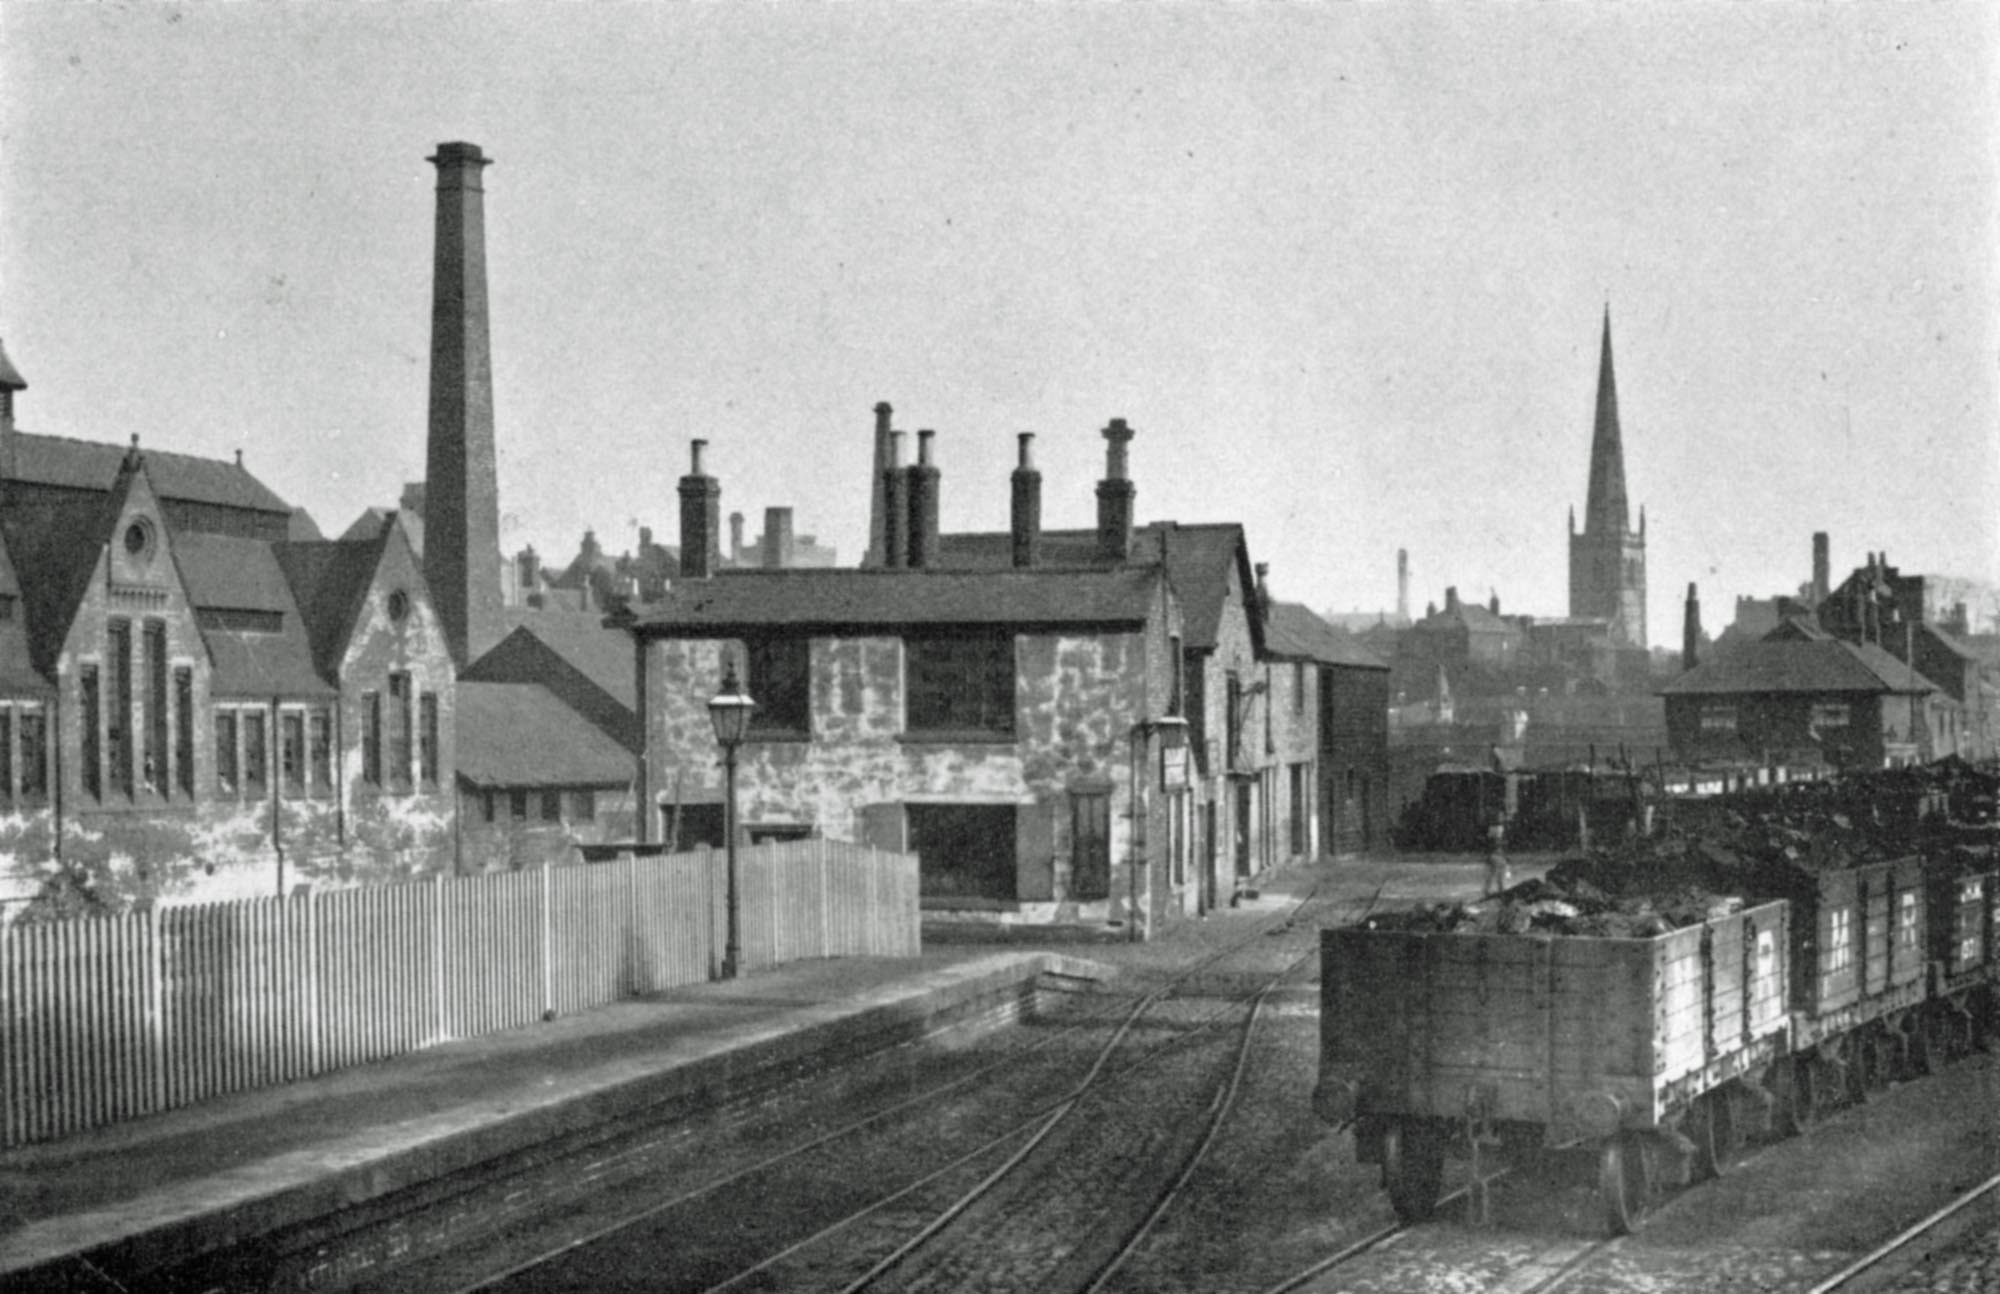 The first West Bridge Station with narrow platform, Mary De Castro Church spire is in the background -